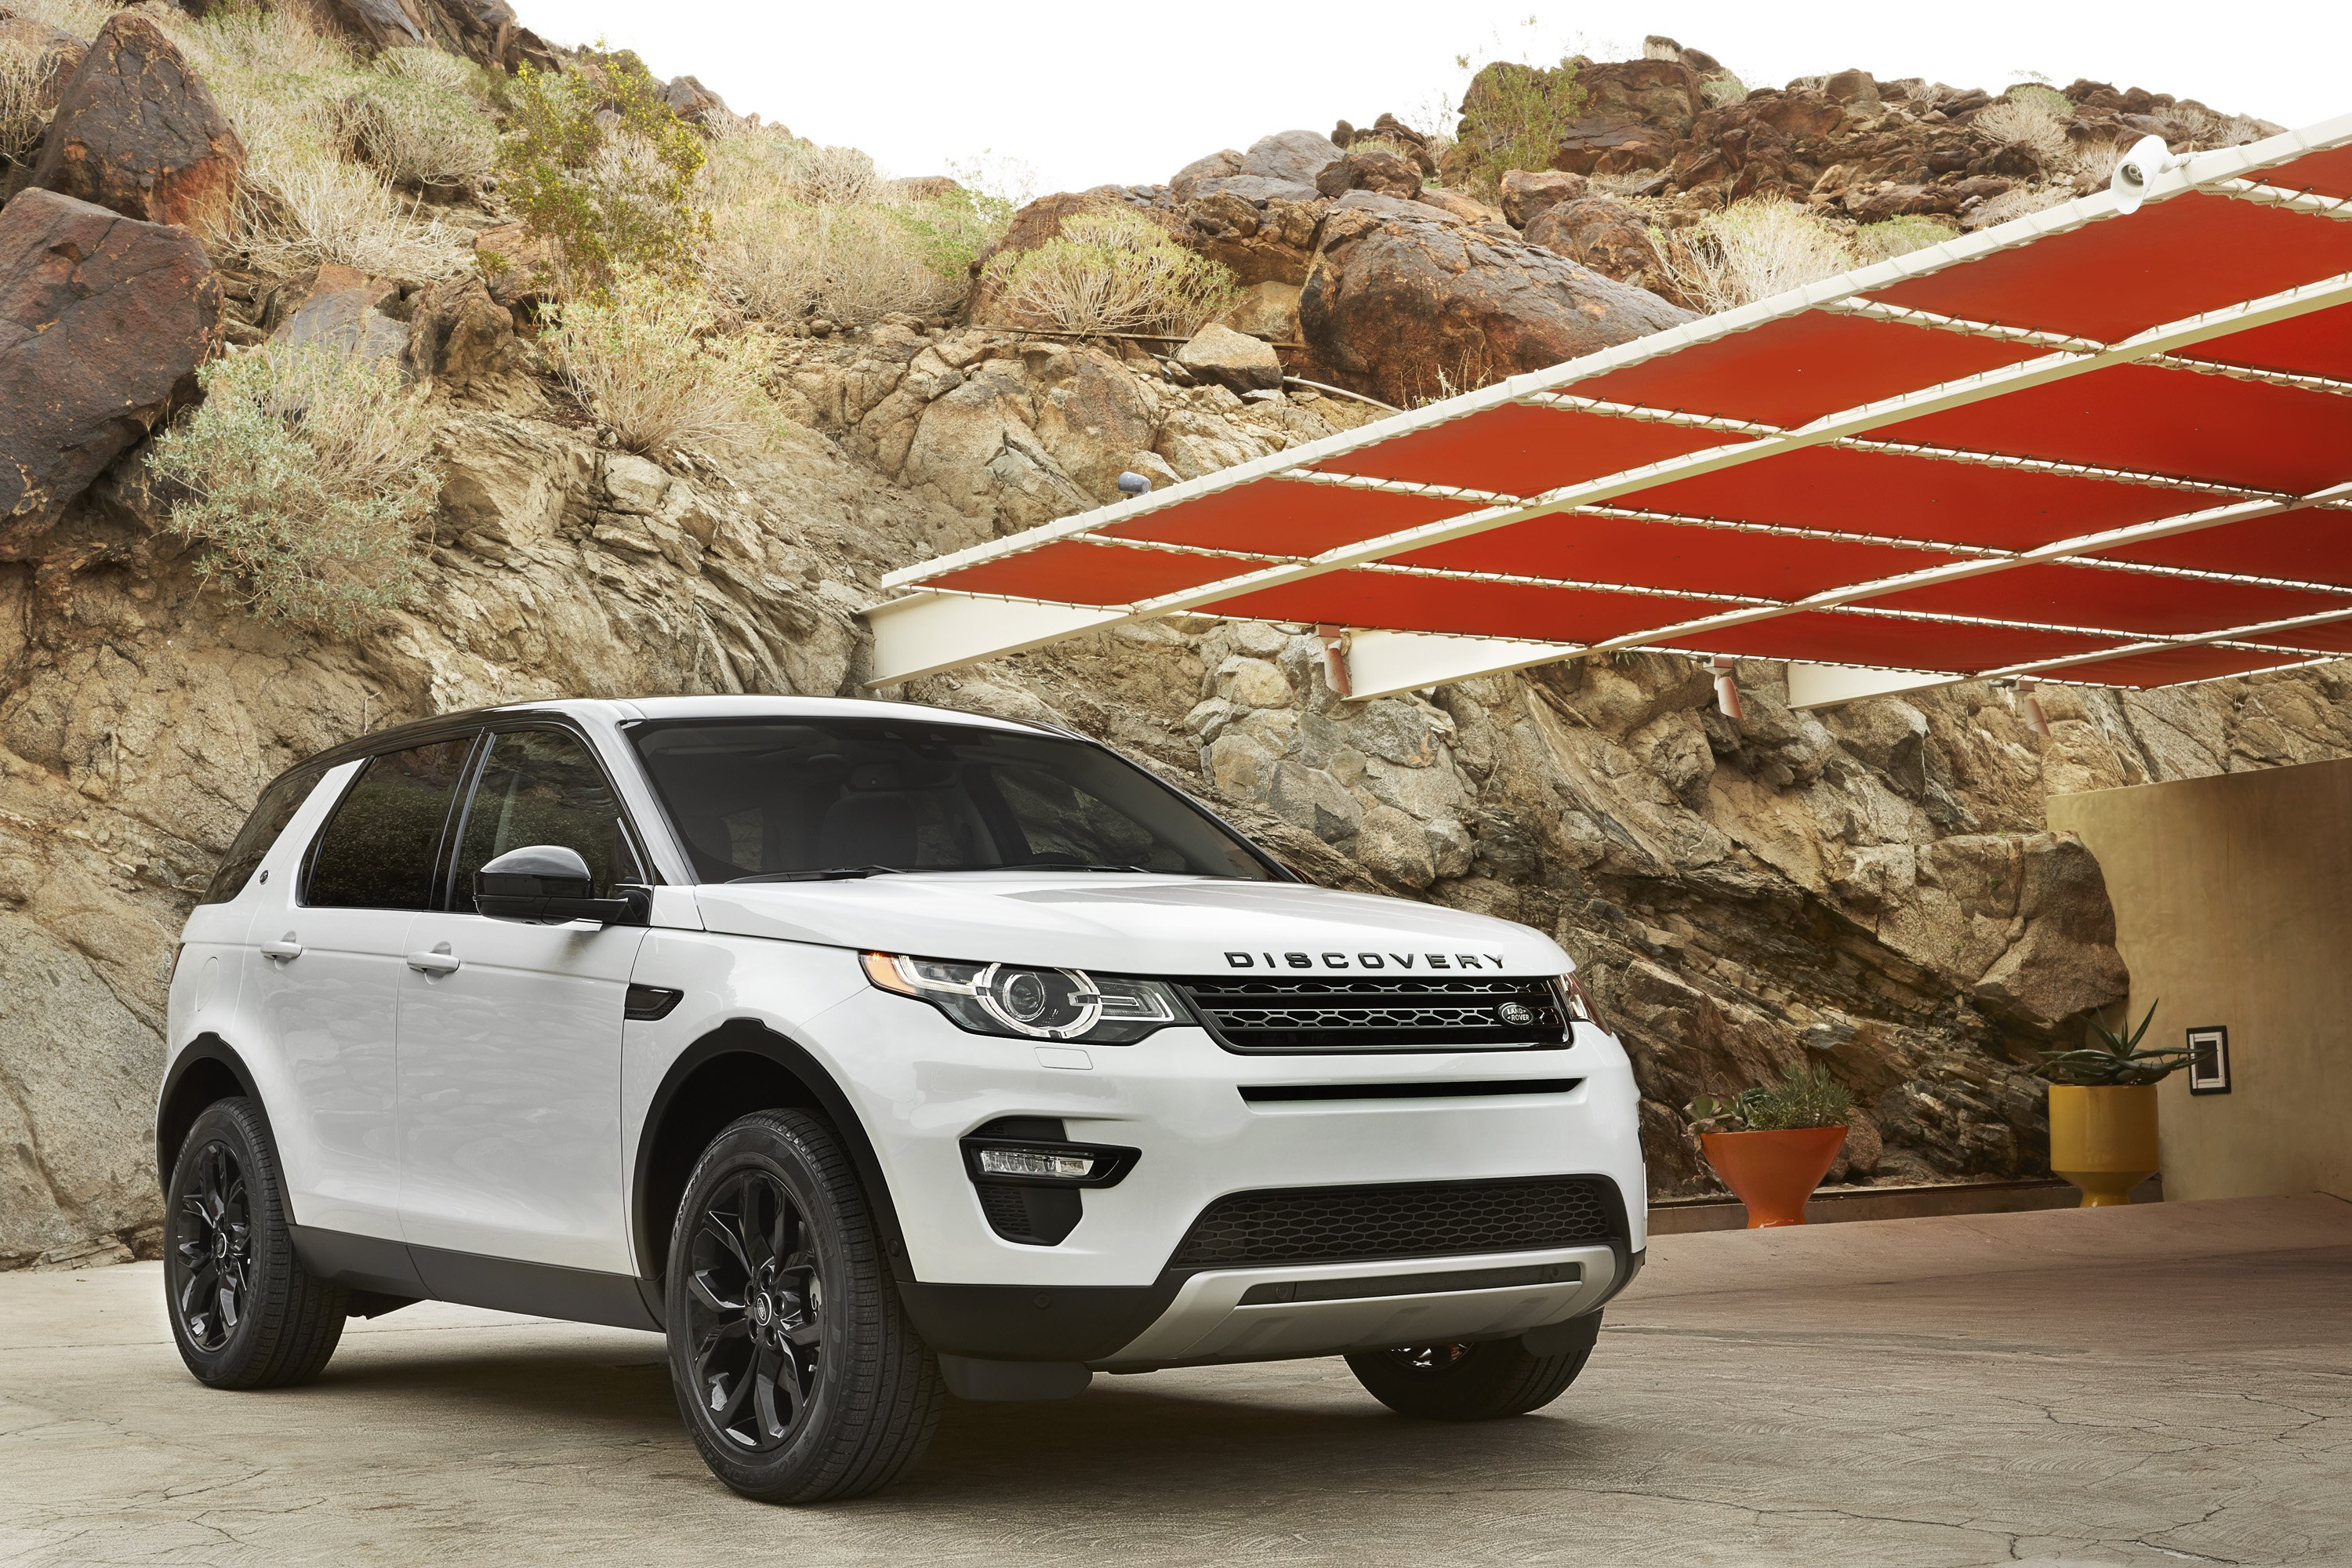 Land Rover Discovery Sport HSE Luxury Black Design Pack cars suv 2015 wallpaper | 3000x2000 ...